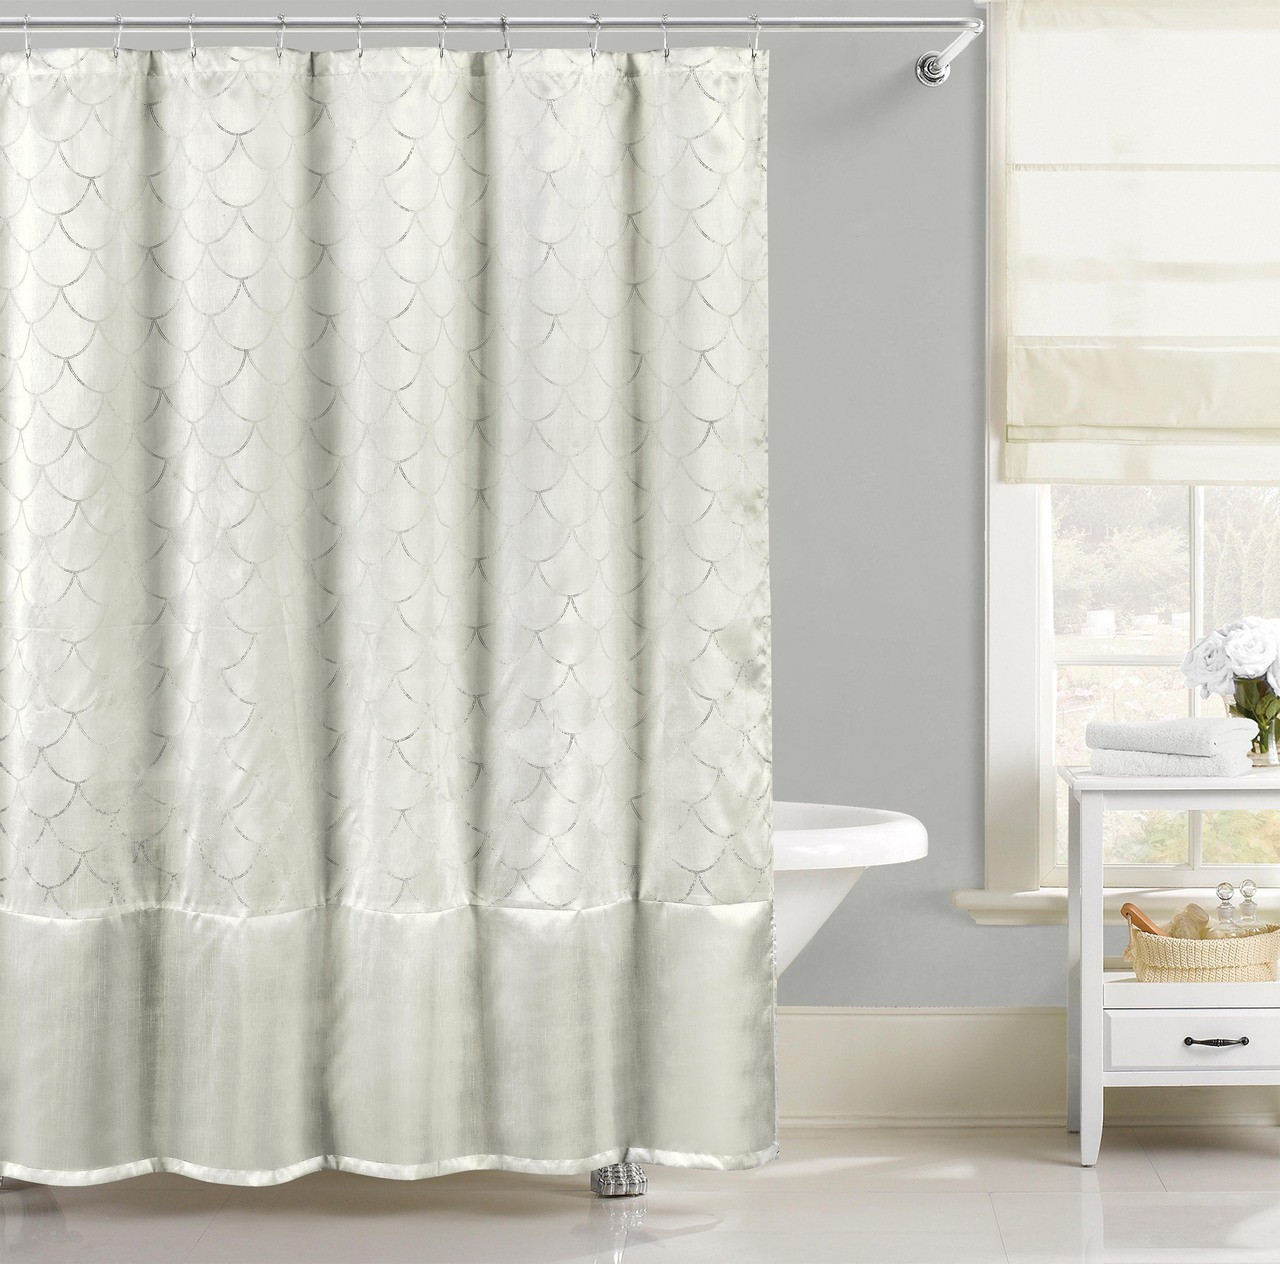 White Faux Silk Fabric Shower Curtain With Pearl Silver Raised Pin Dots